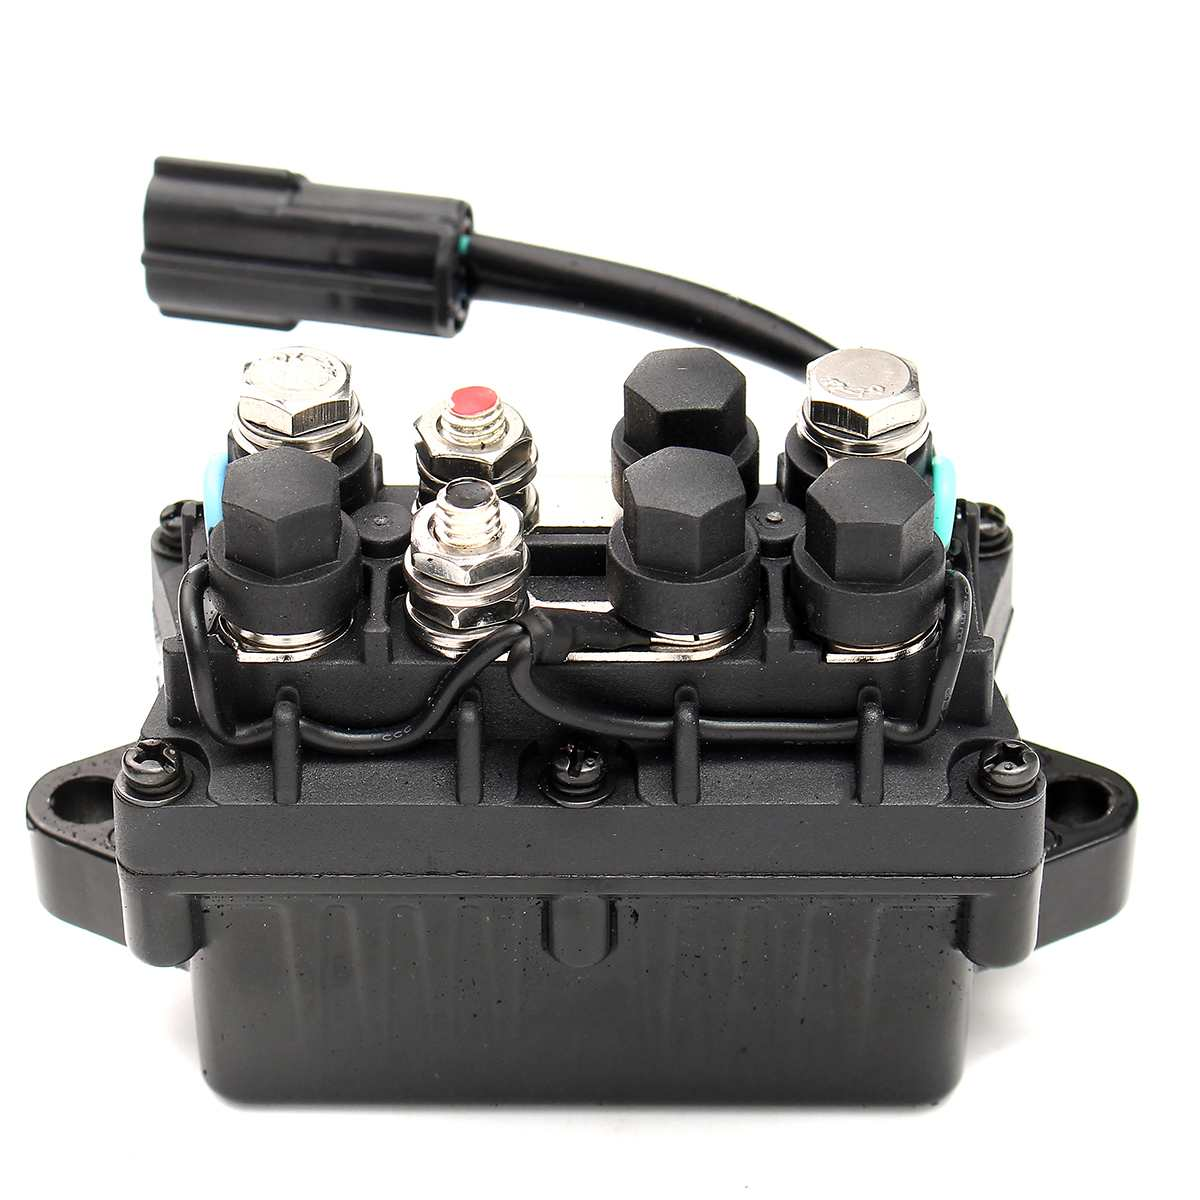 Trim Relay 63P-81950-00-00 For Yamaha Outboard F150 F250 F90 75 60 ...